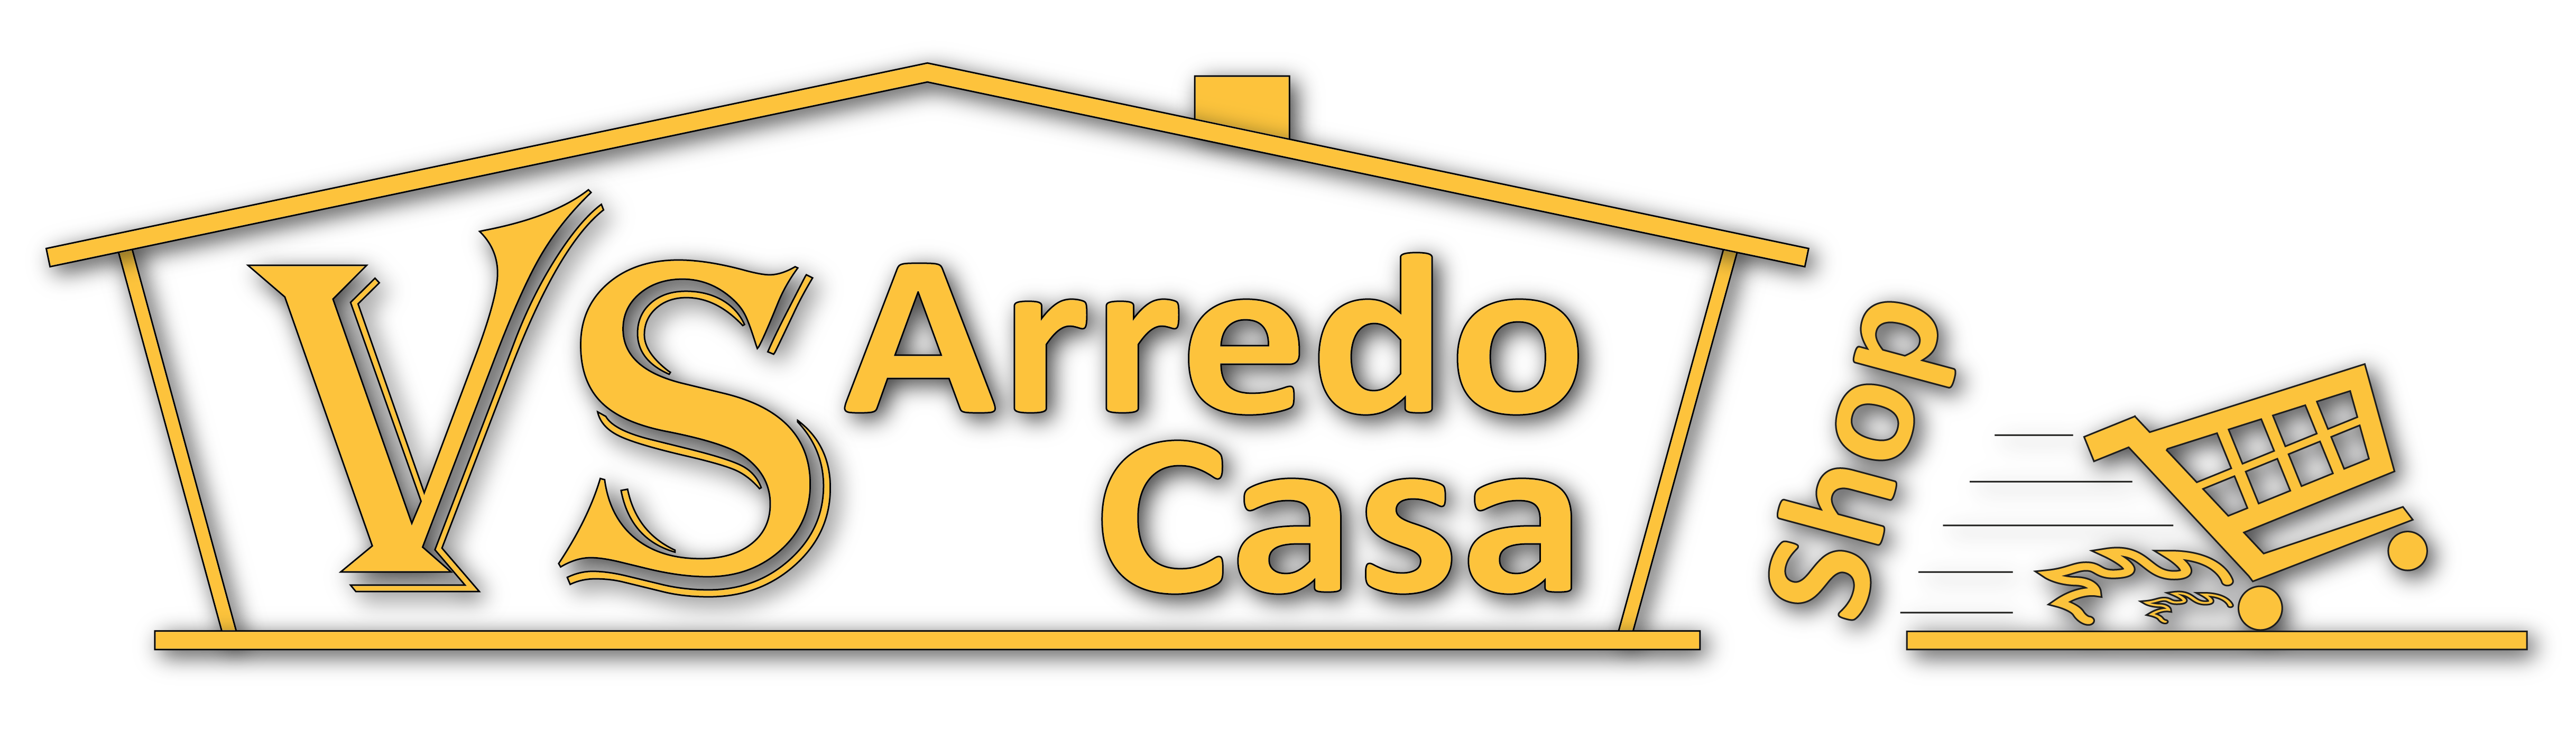 www.vsarredocasashop.it